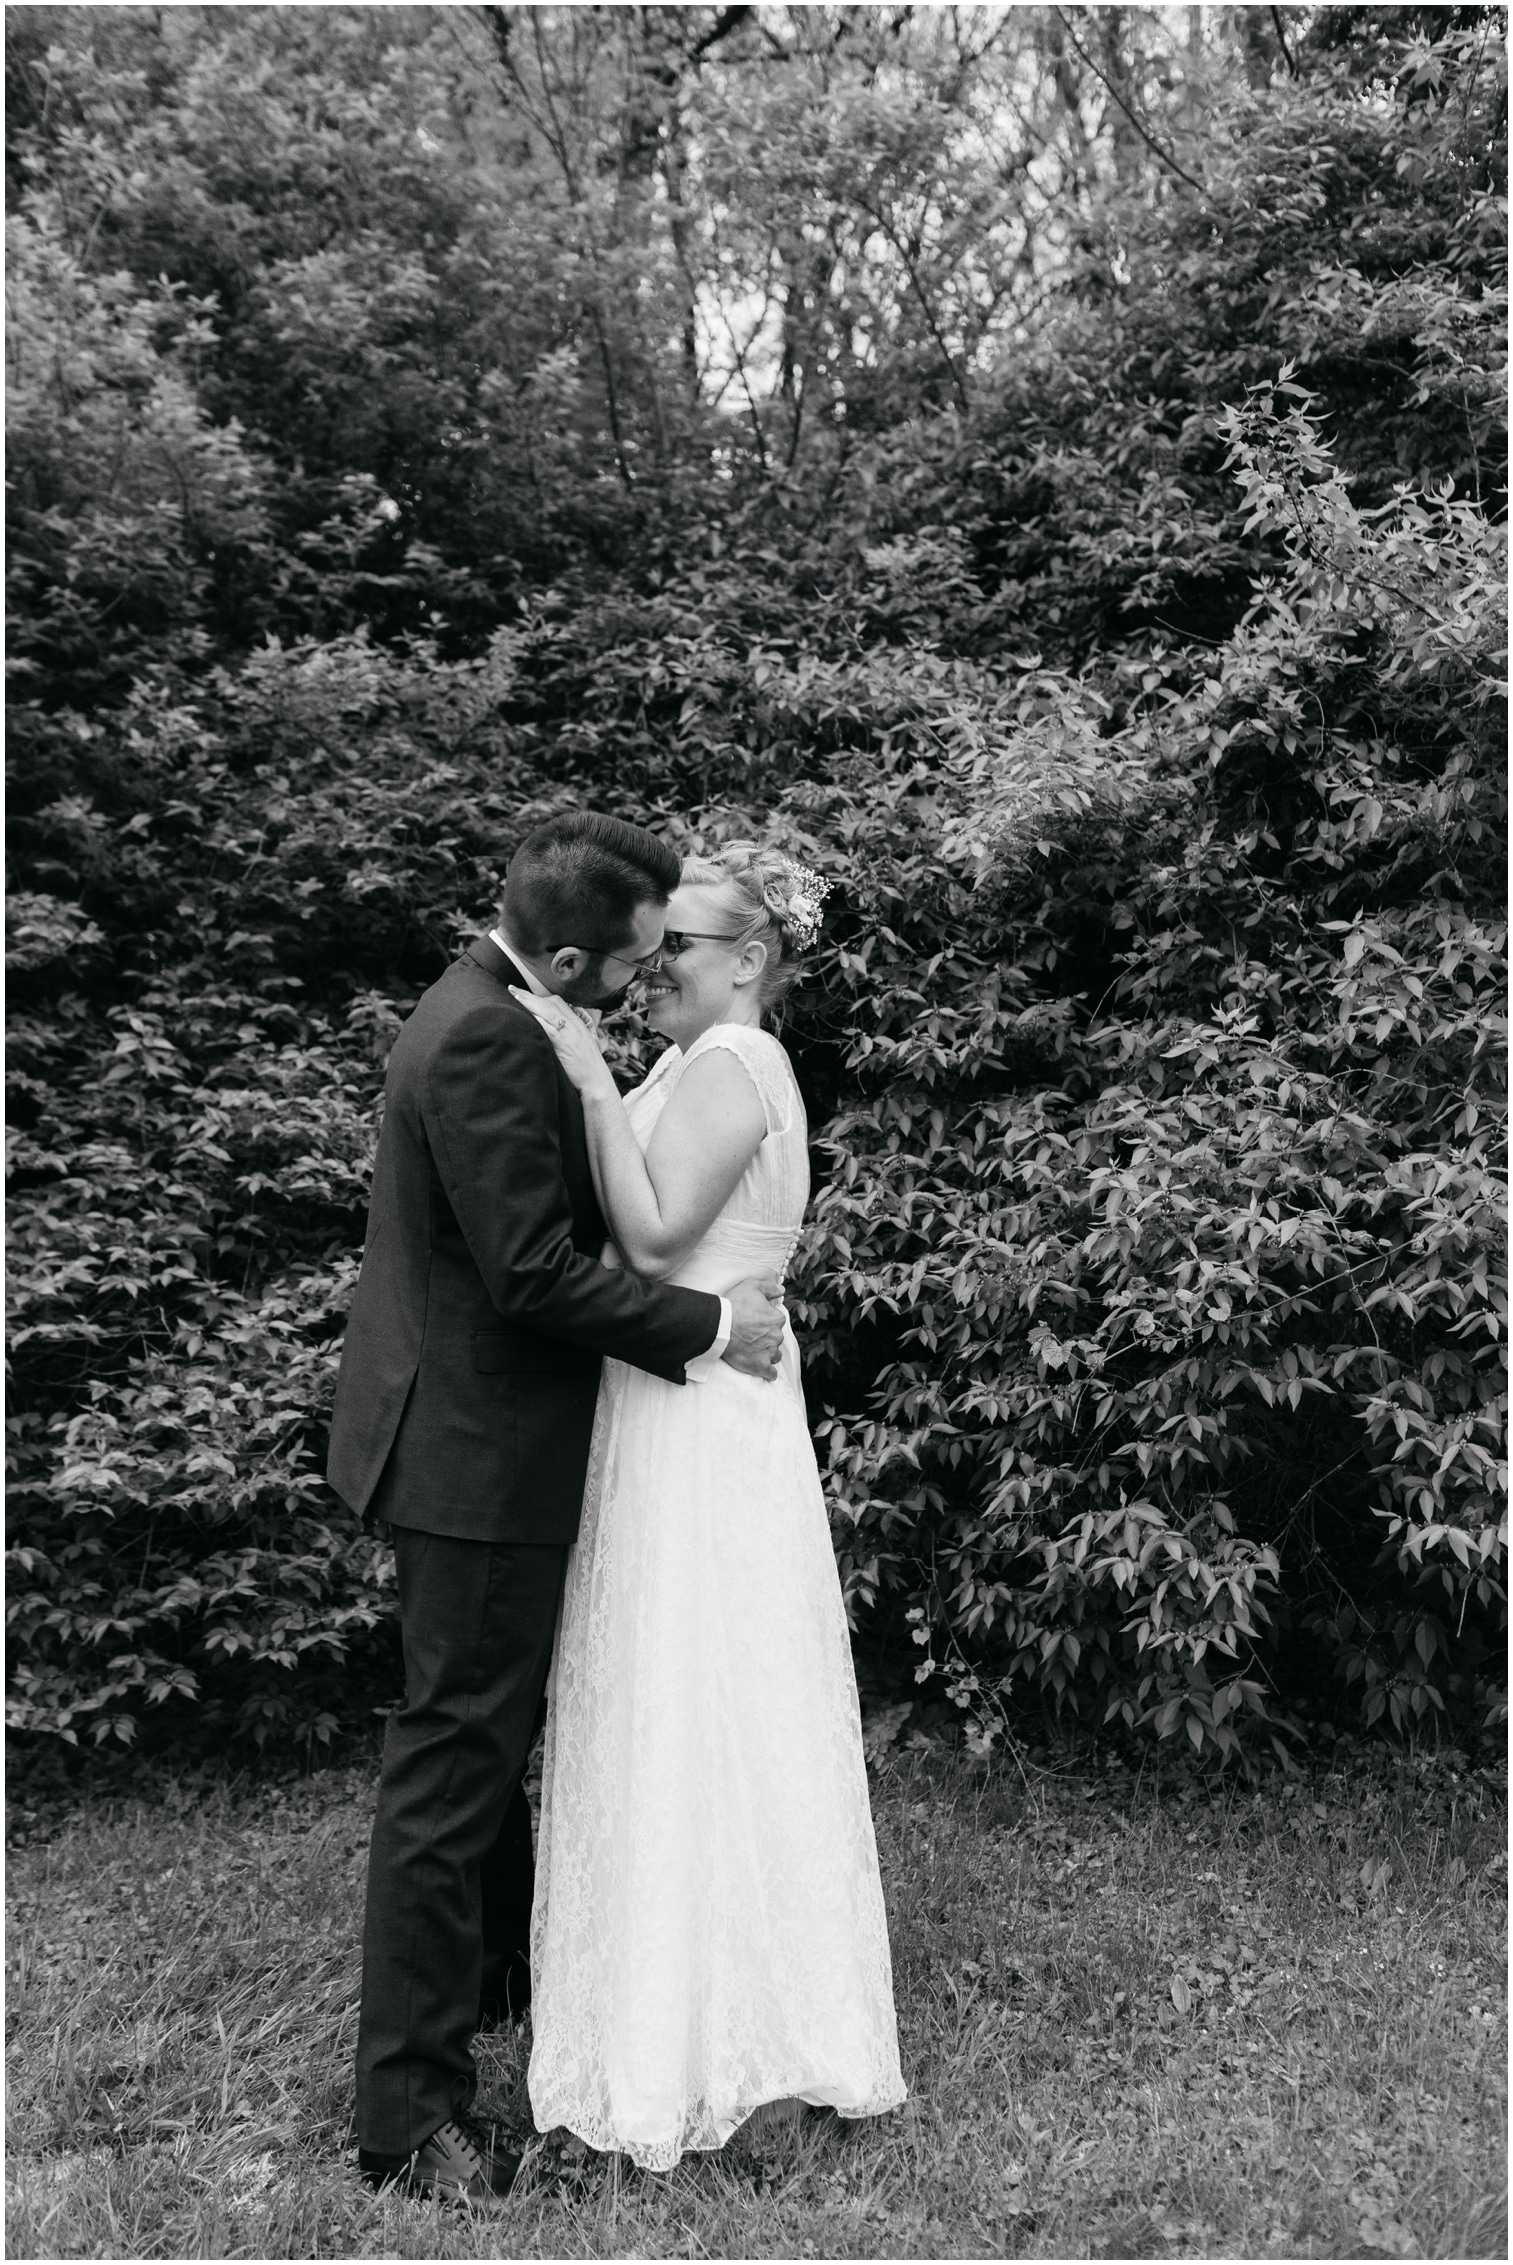 adam lowe photography, columbus, ohio, wedding, style, love, bride and groom, bleu & fig, midwest photo,